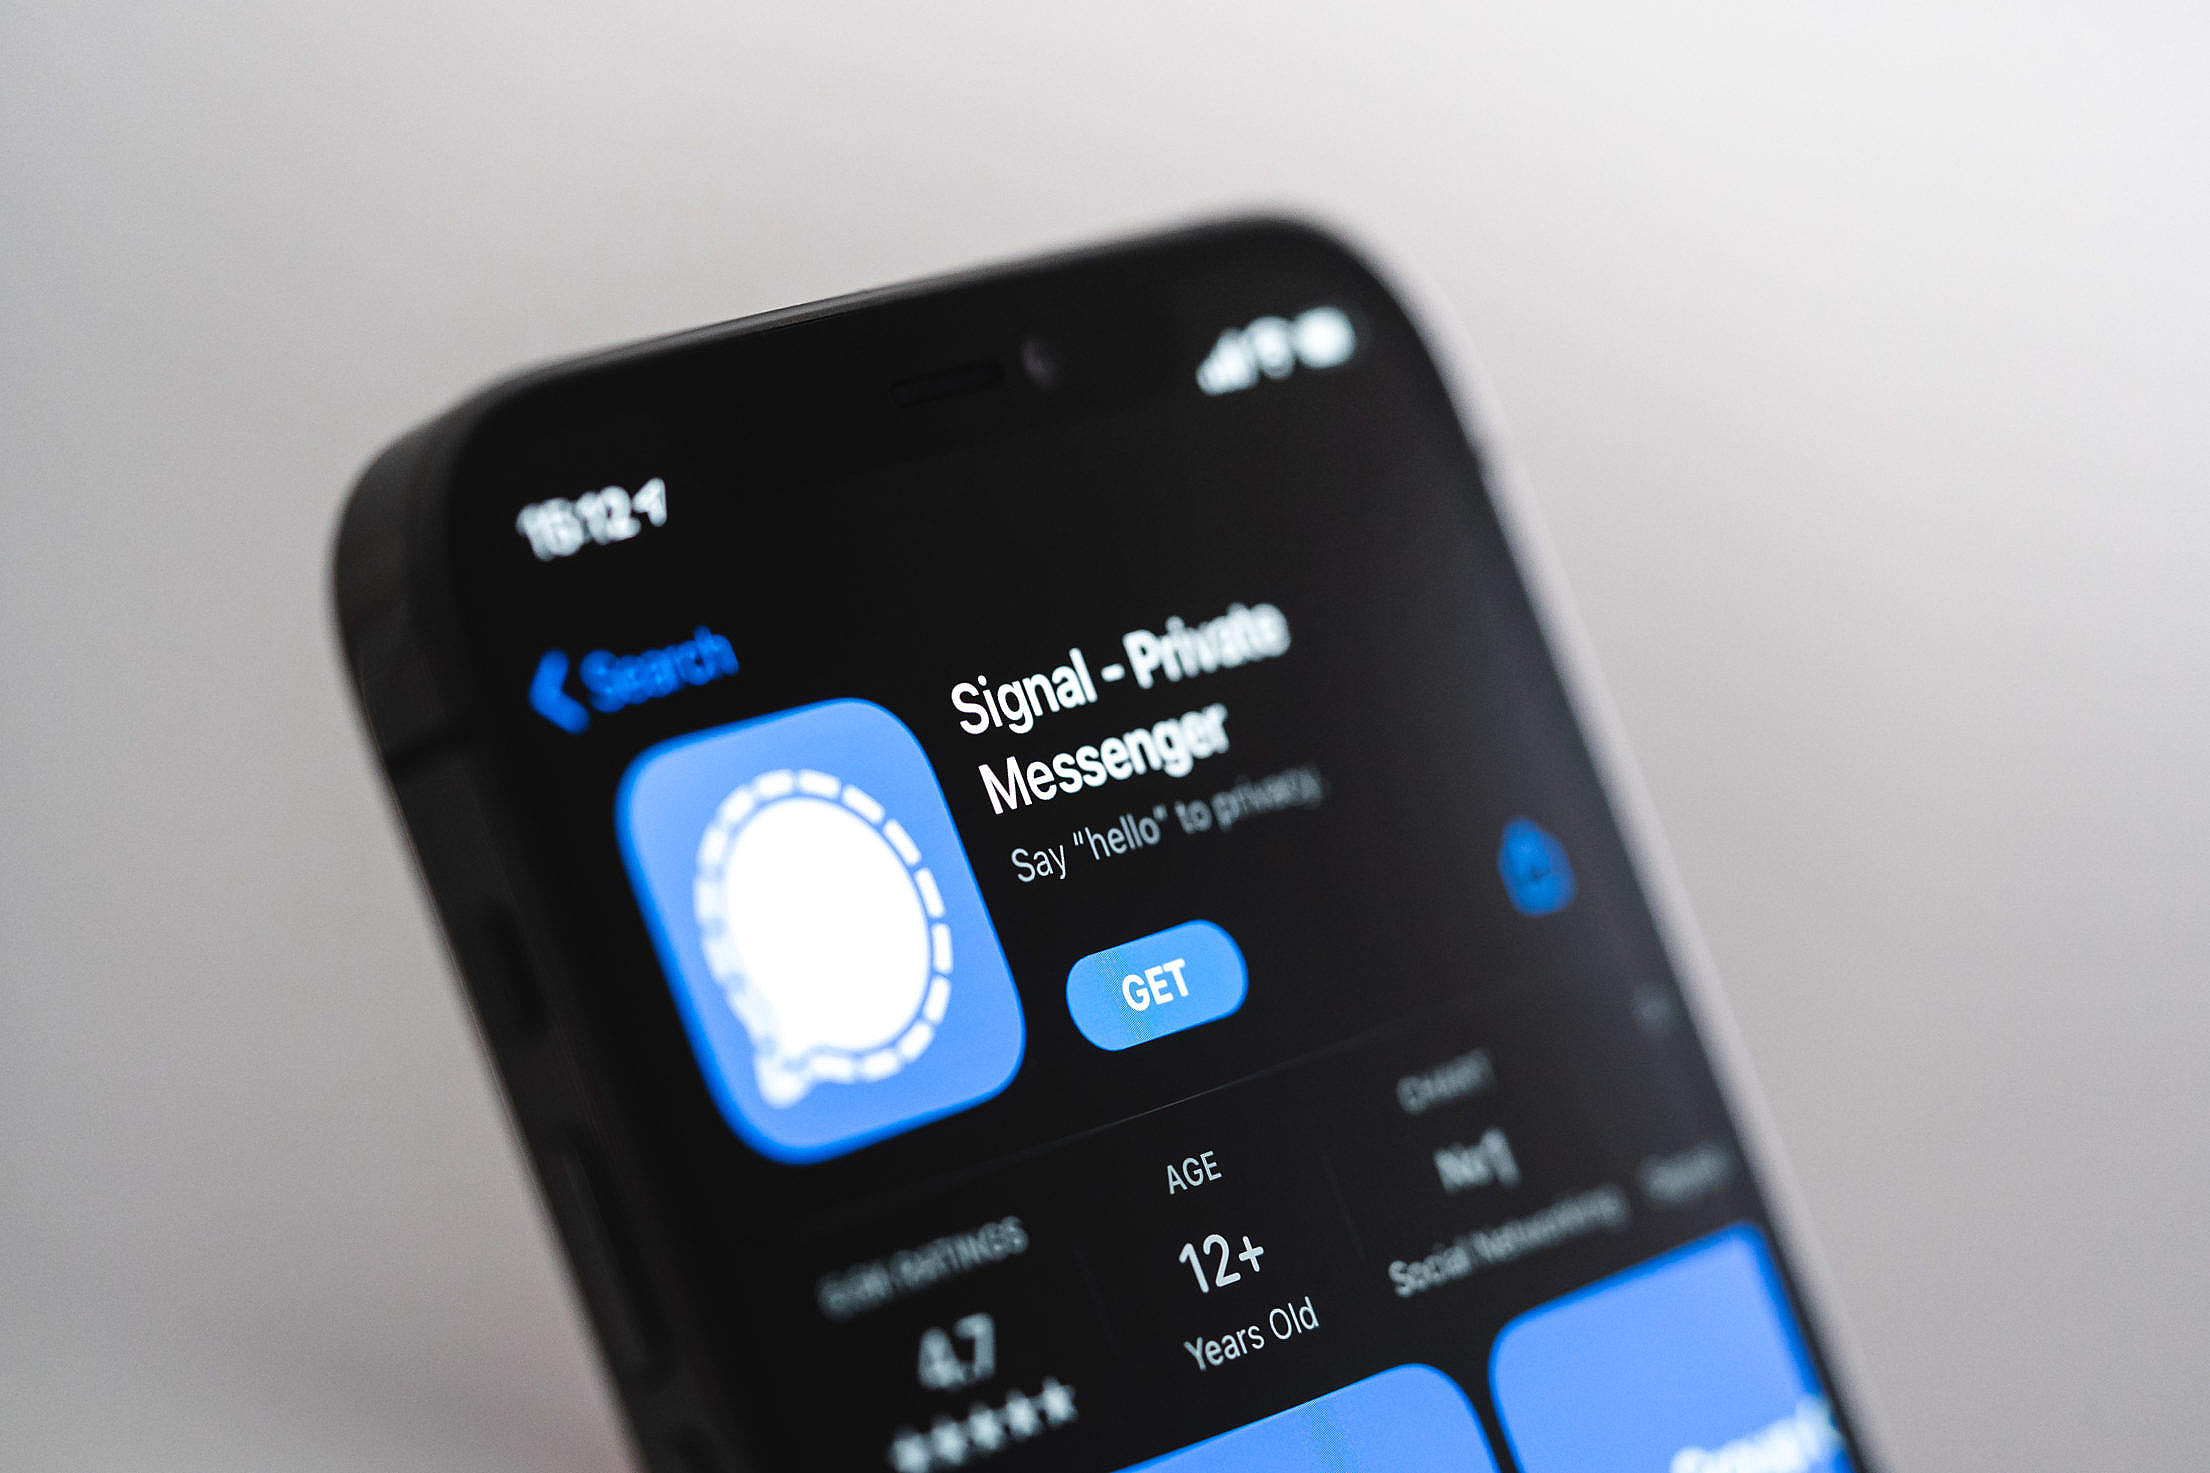 Signal – Private Messenger Application Free Stock Photo